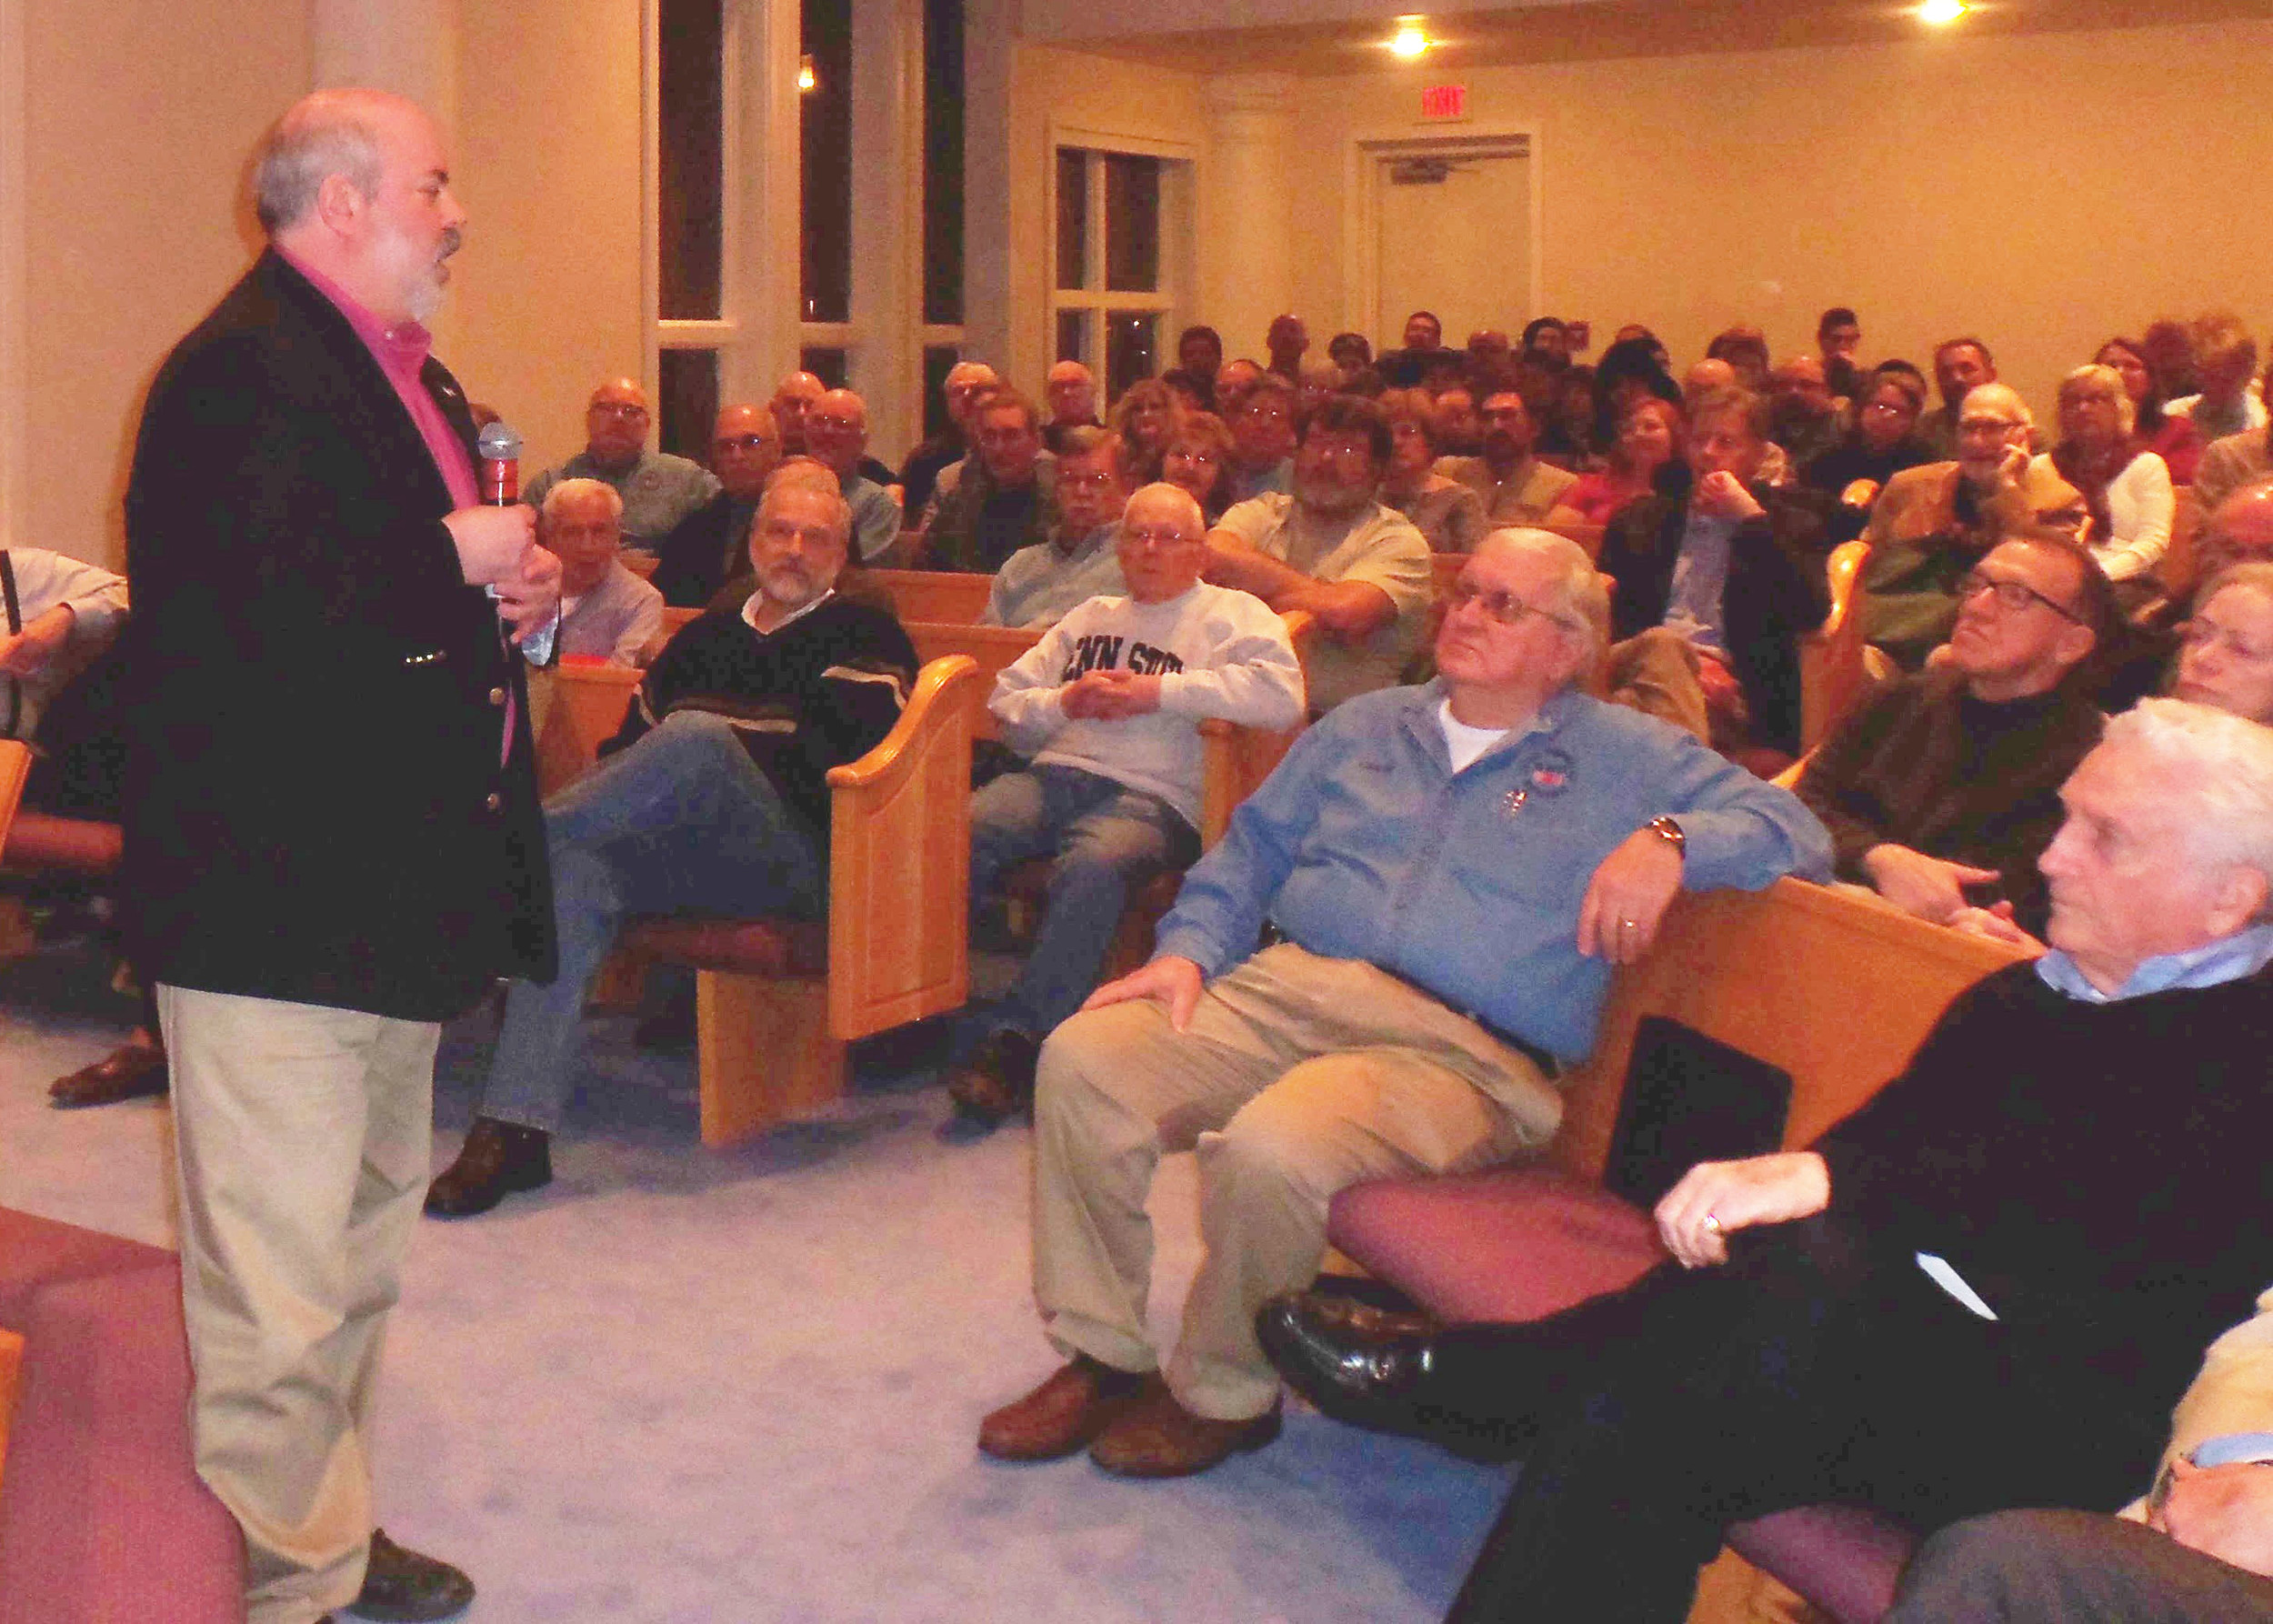 Steve Gross, son of Holocaust survivor Ernie Gross, introduces his father and World War II Army veteran Don Greenabaum to the crowd at the Central Pennsylvania Roundtable at Grace United Methodist Church, Hummelstown, on March 2. Greebaum liberated Gross from a German concentration camp in April 1945.